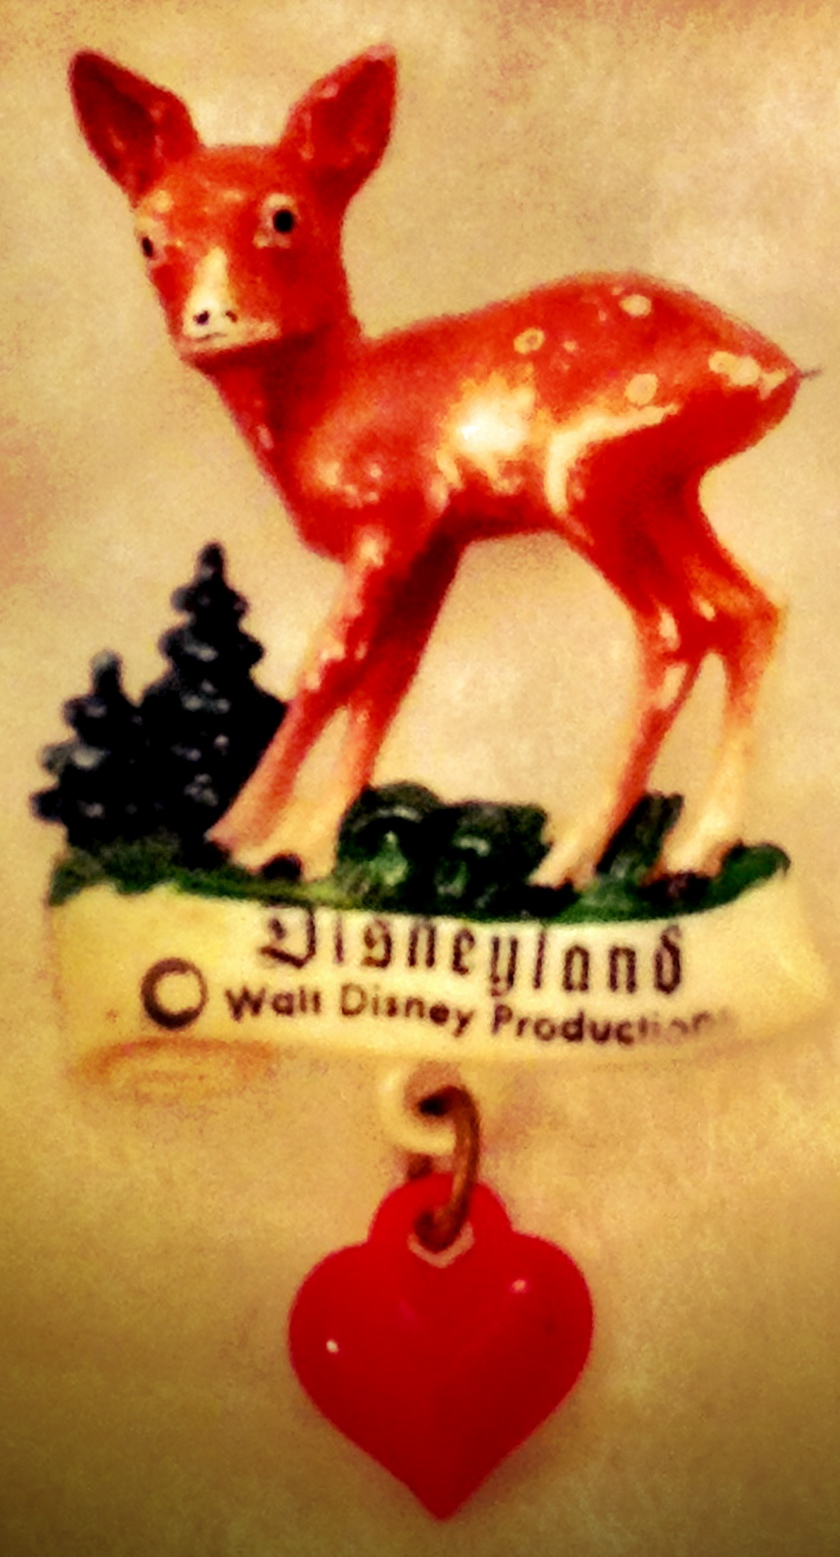 Disneyland Christmas Deer.JPG